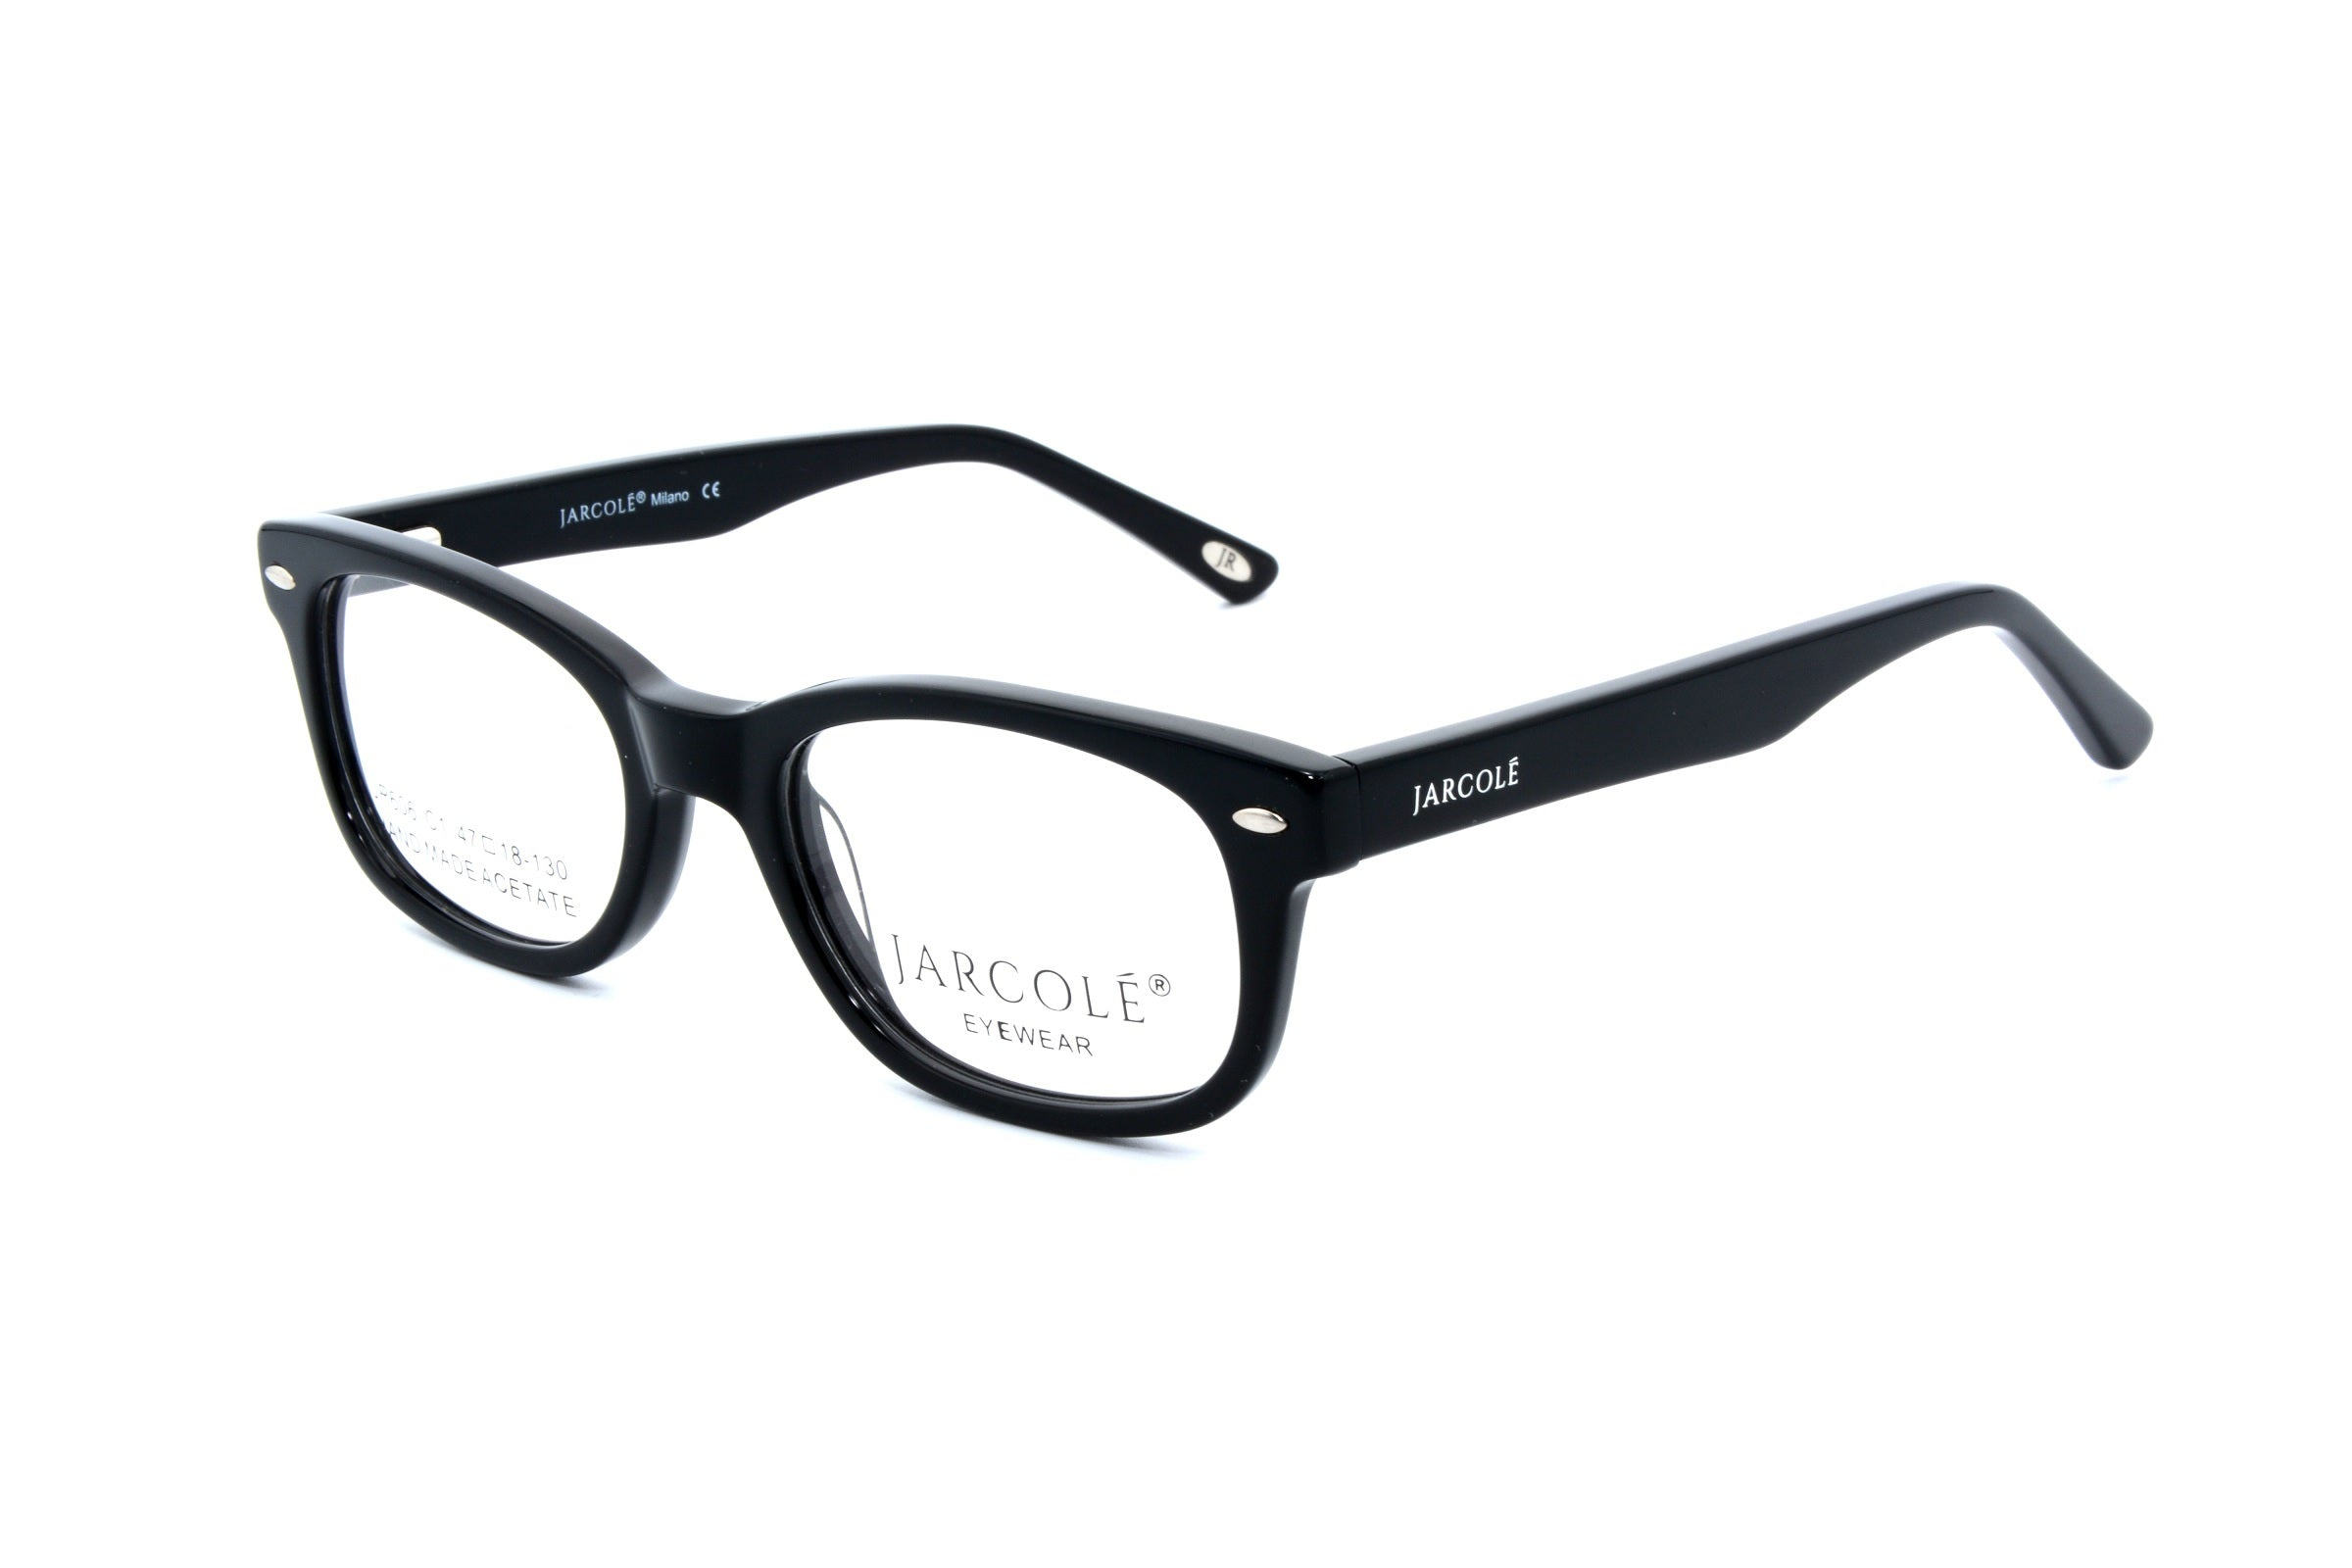 Jarcole eyewear 605, C1 - Optics Trading